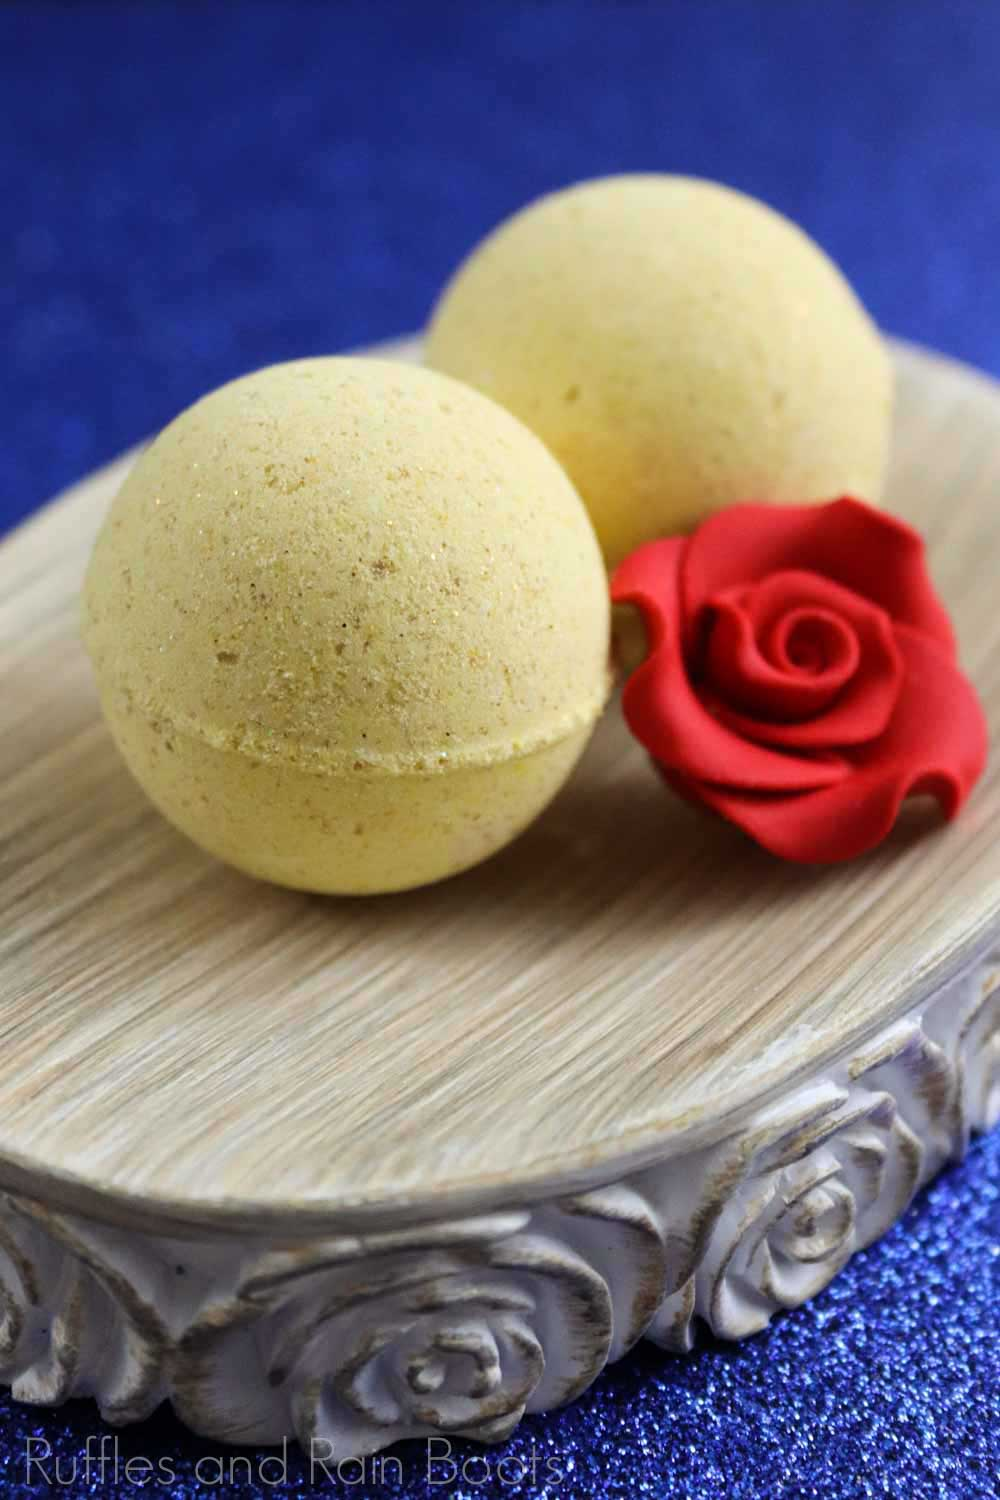 belloe shower bombs recipe disney gift idea on a silver plate on a blue background